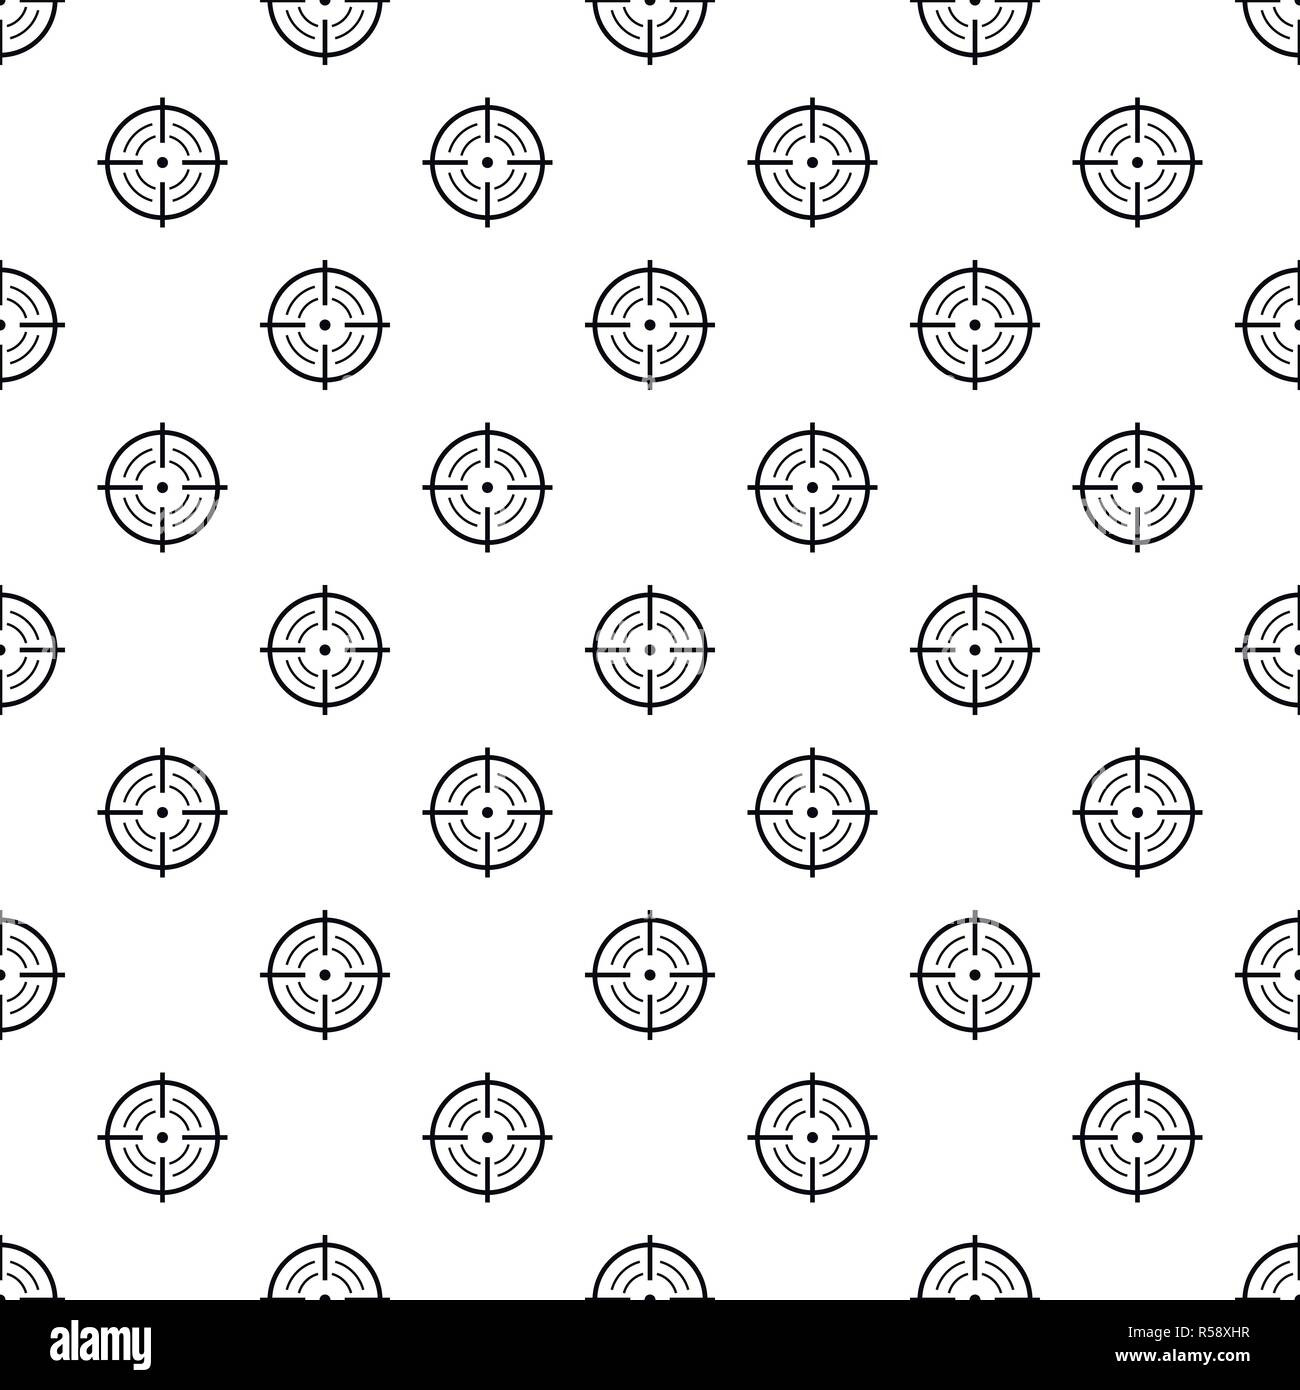 Rear sight pattern seamless vector repeat geometric for any web design - Stock Vector